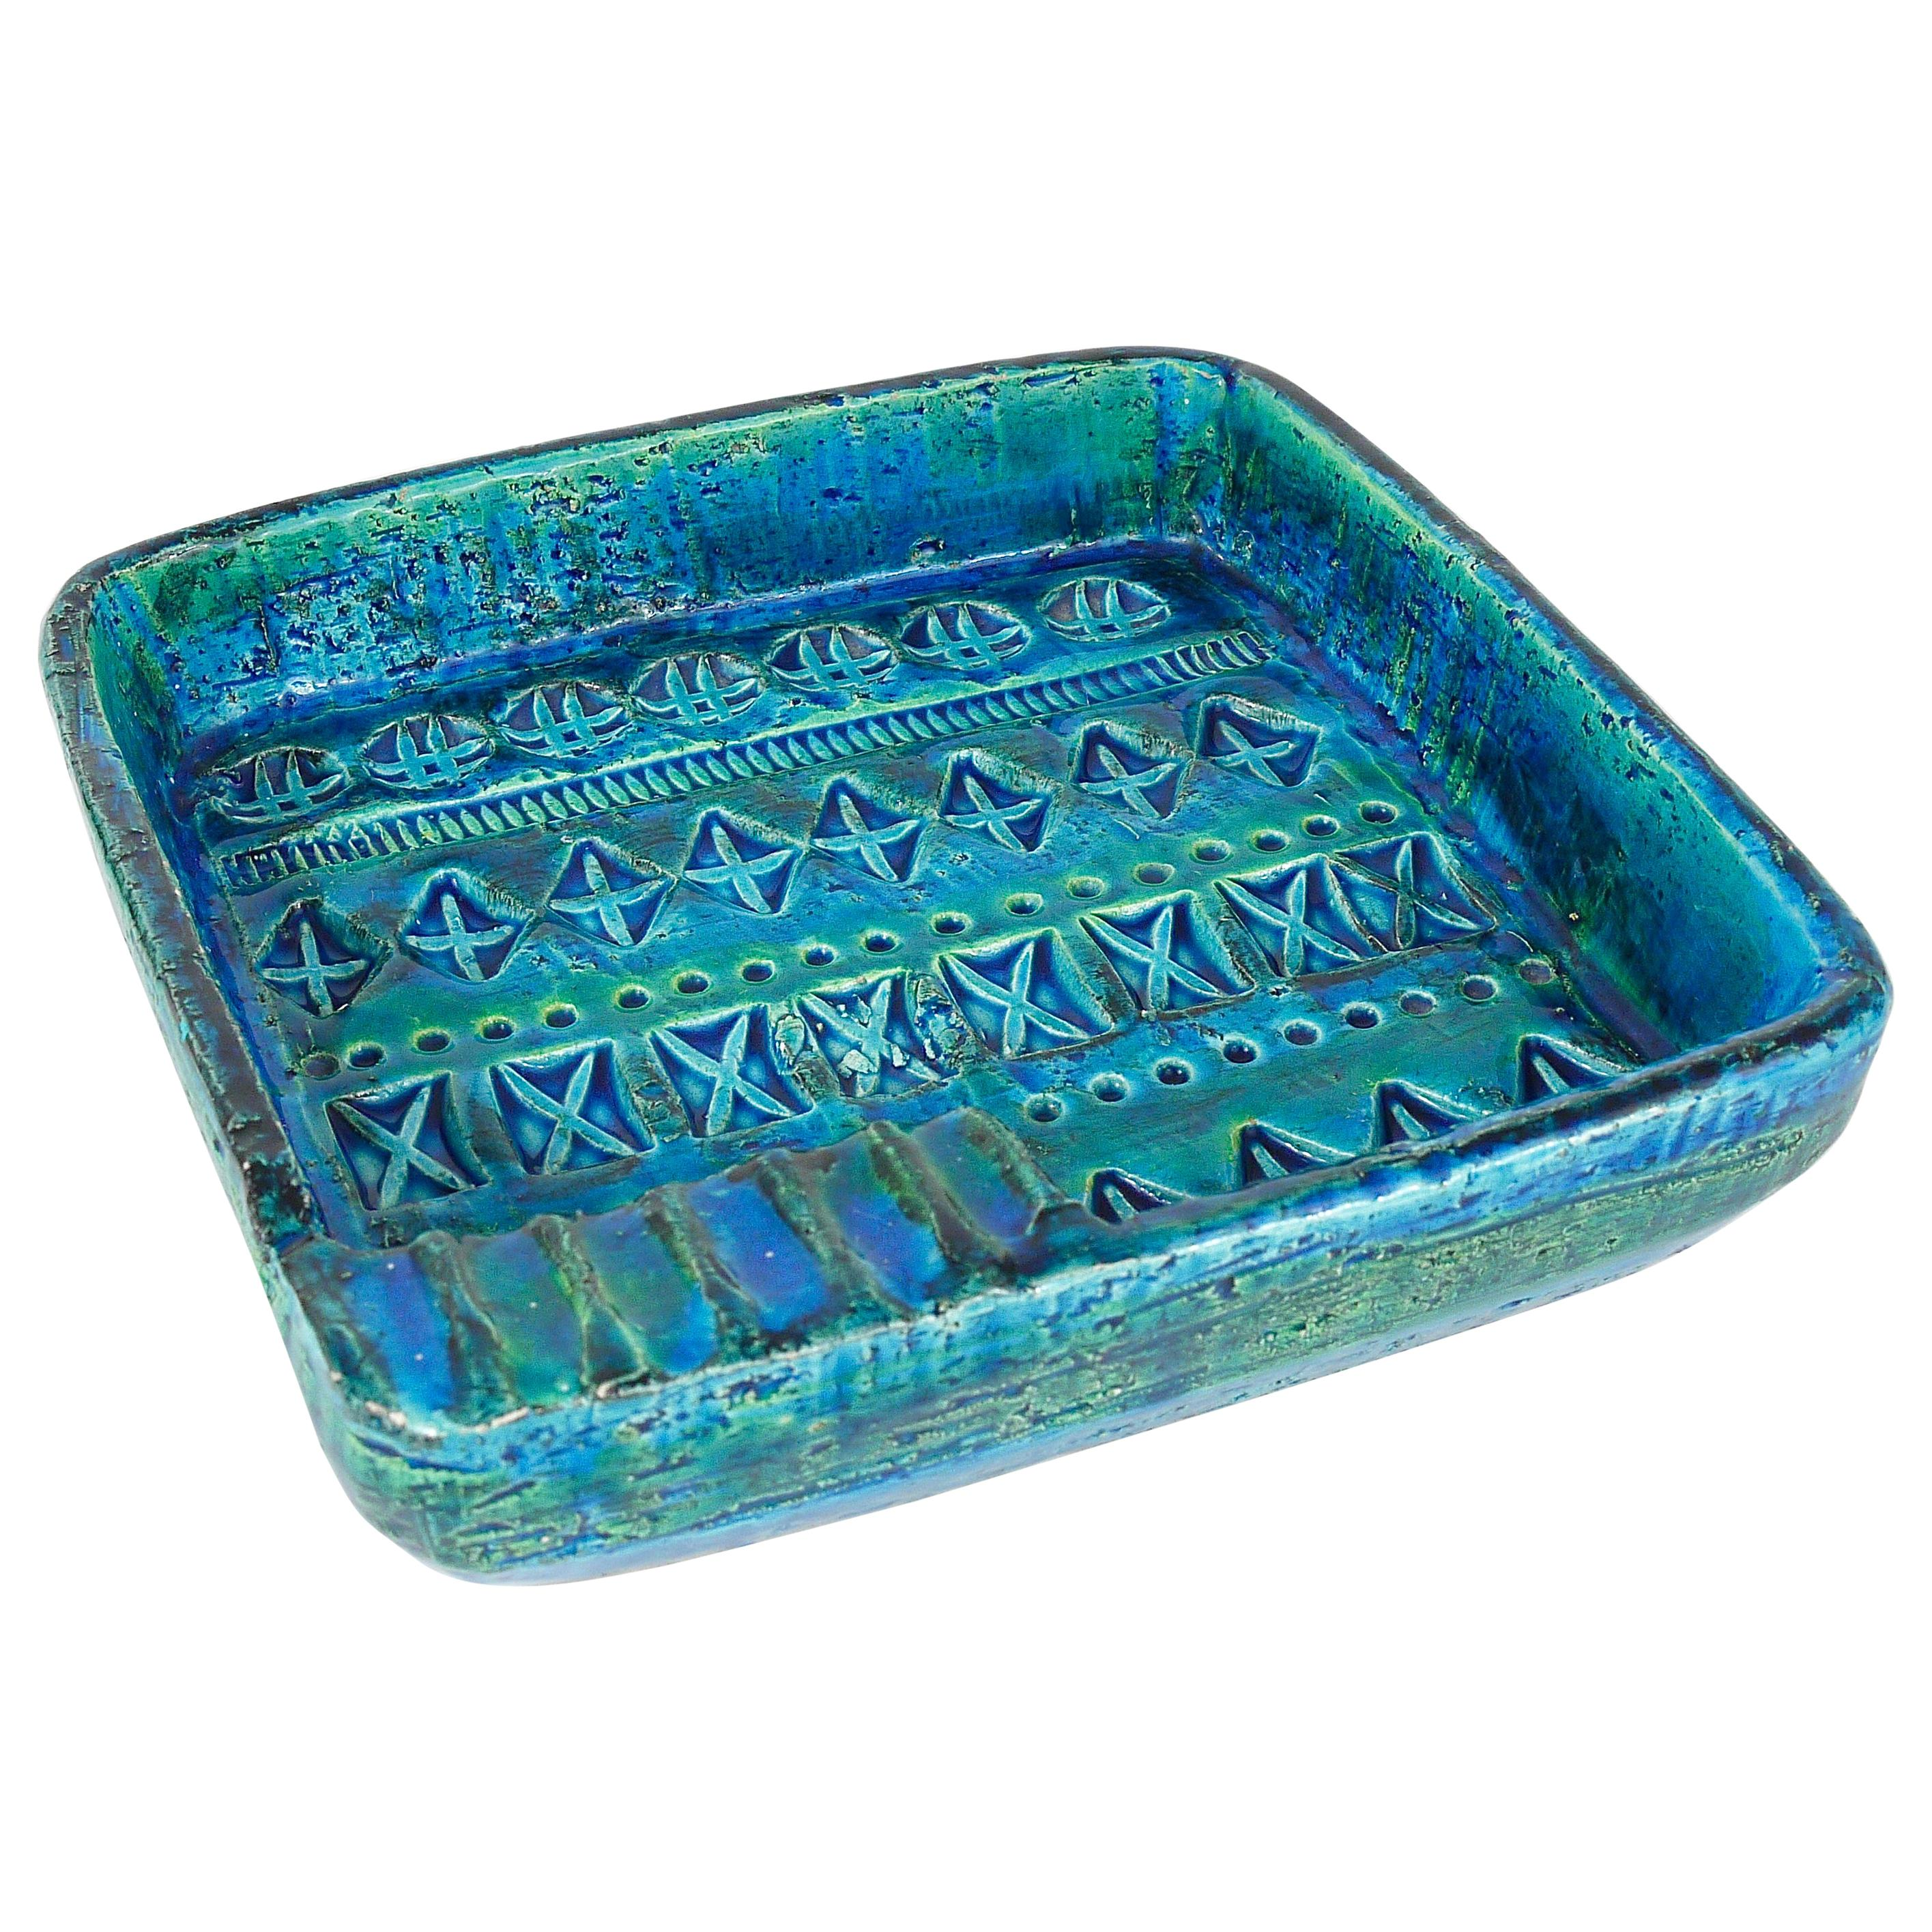 Aldo Londi Bitossi Rimini Blue Glazed Square Midcentury Ashtray, Italy, 1950s